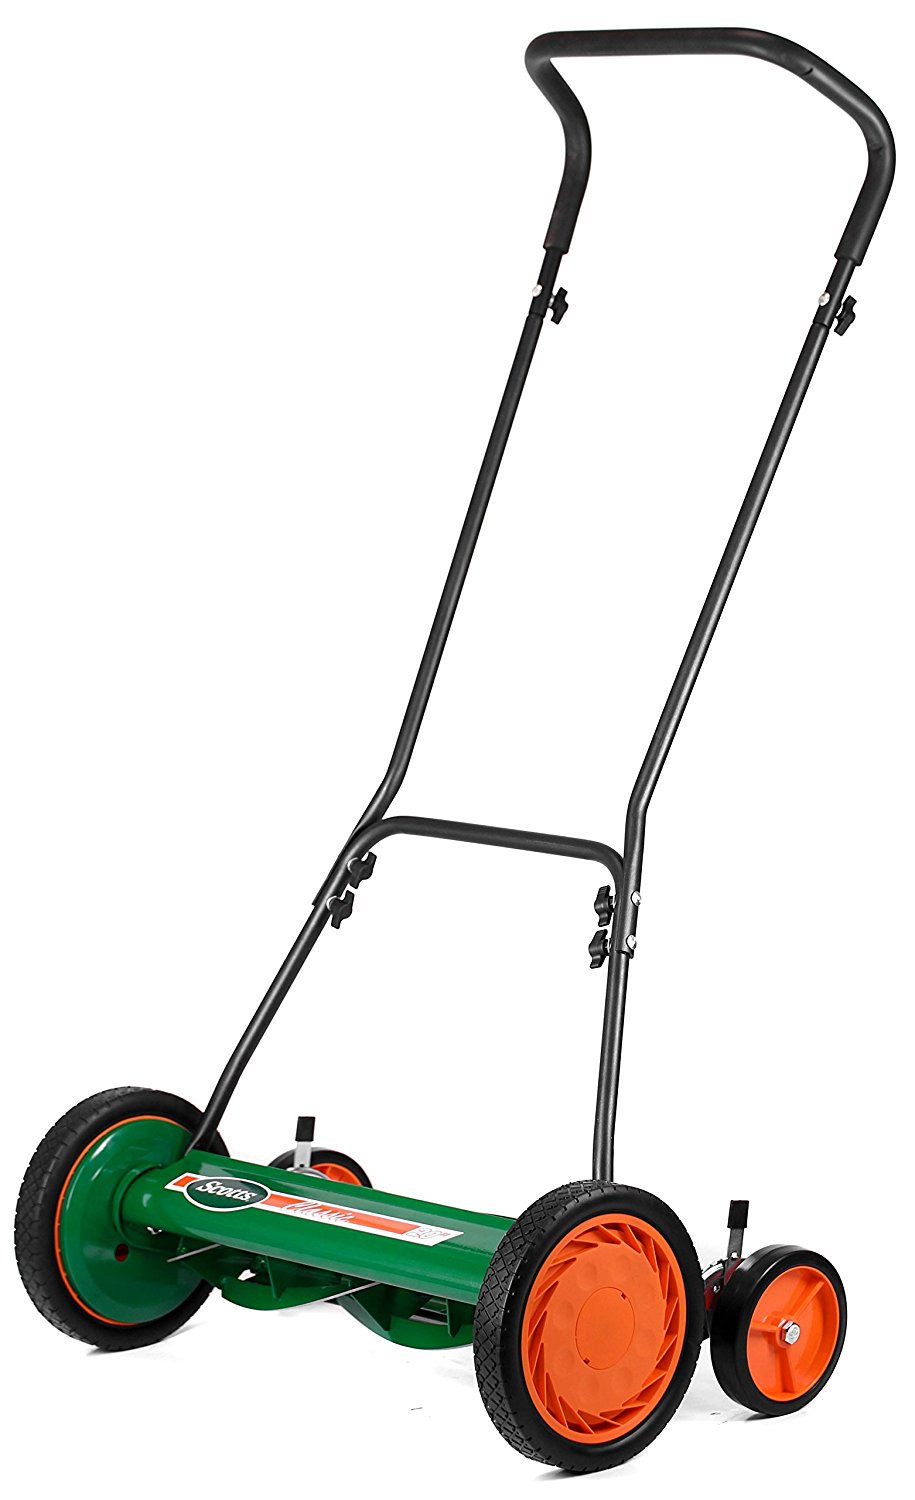 Cheap Used Riding Lawn Mowers For Sale Decor Ideasdecor